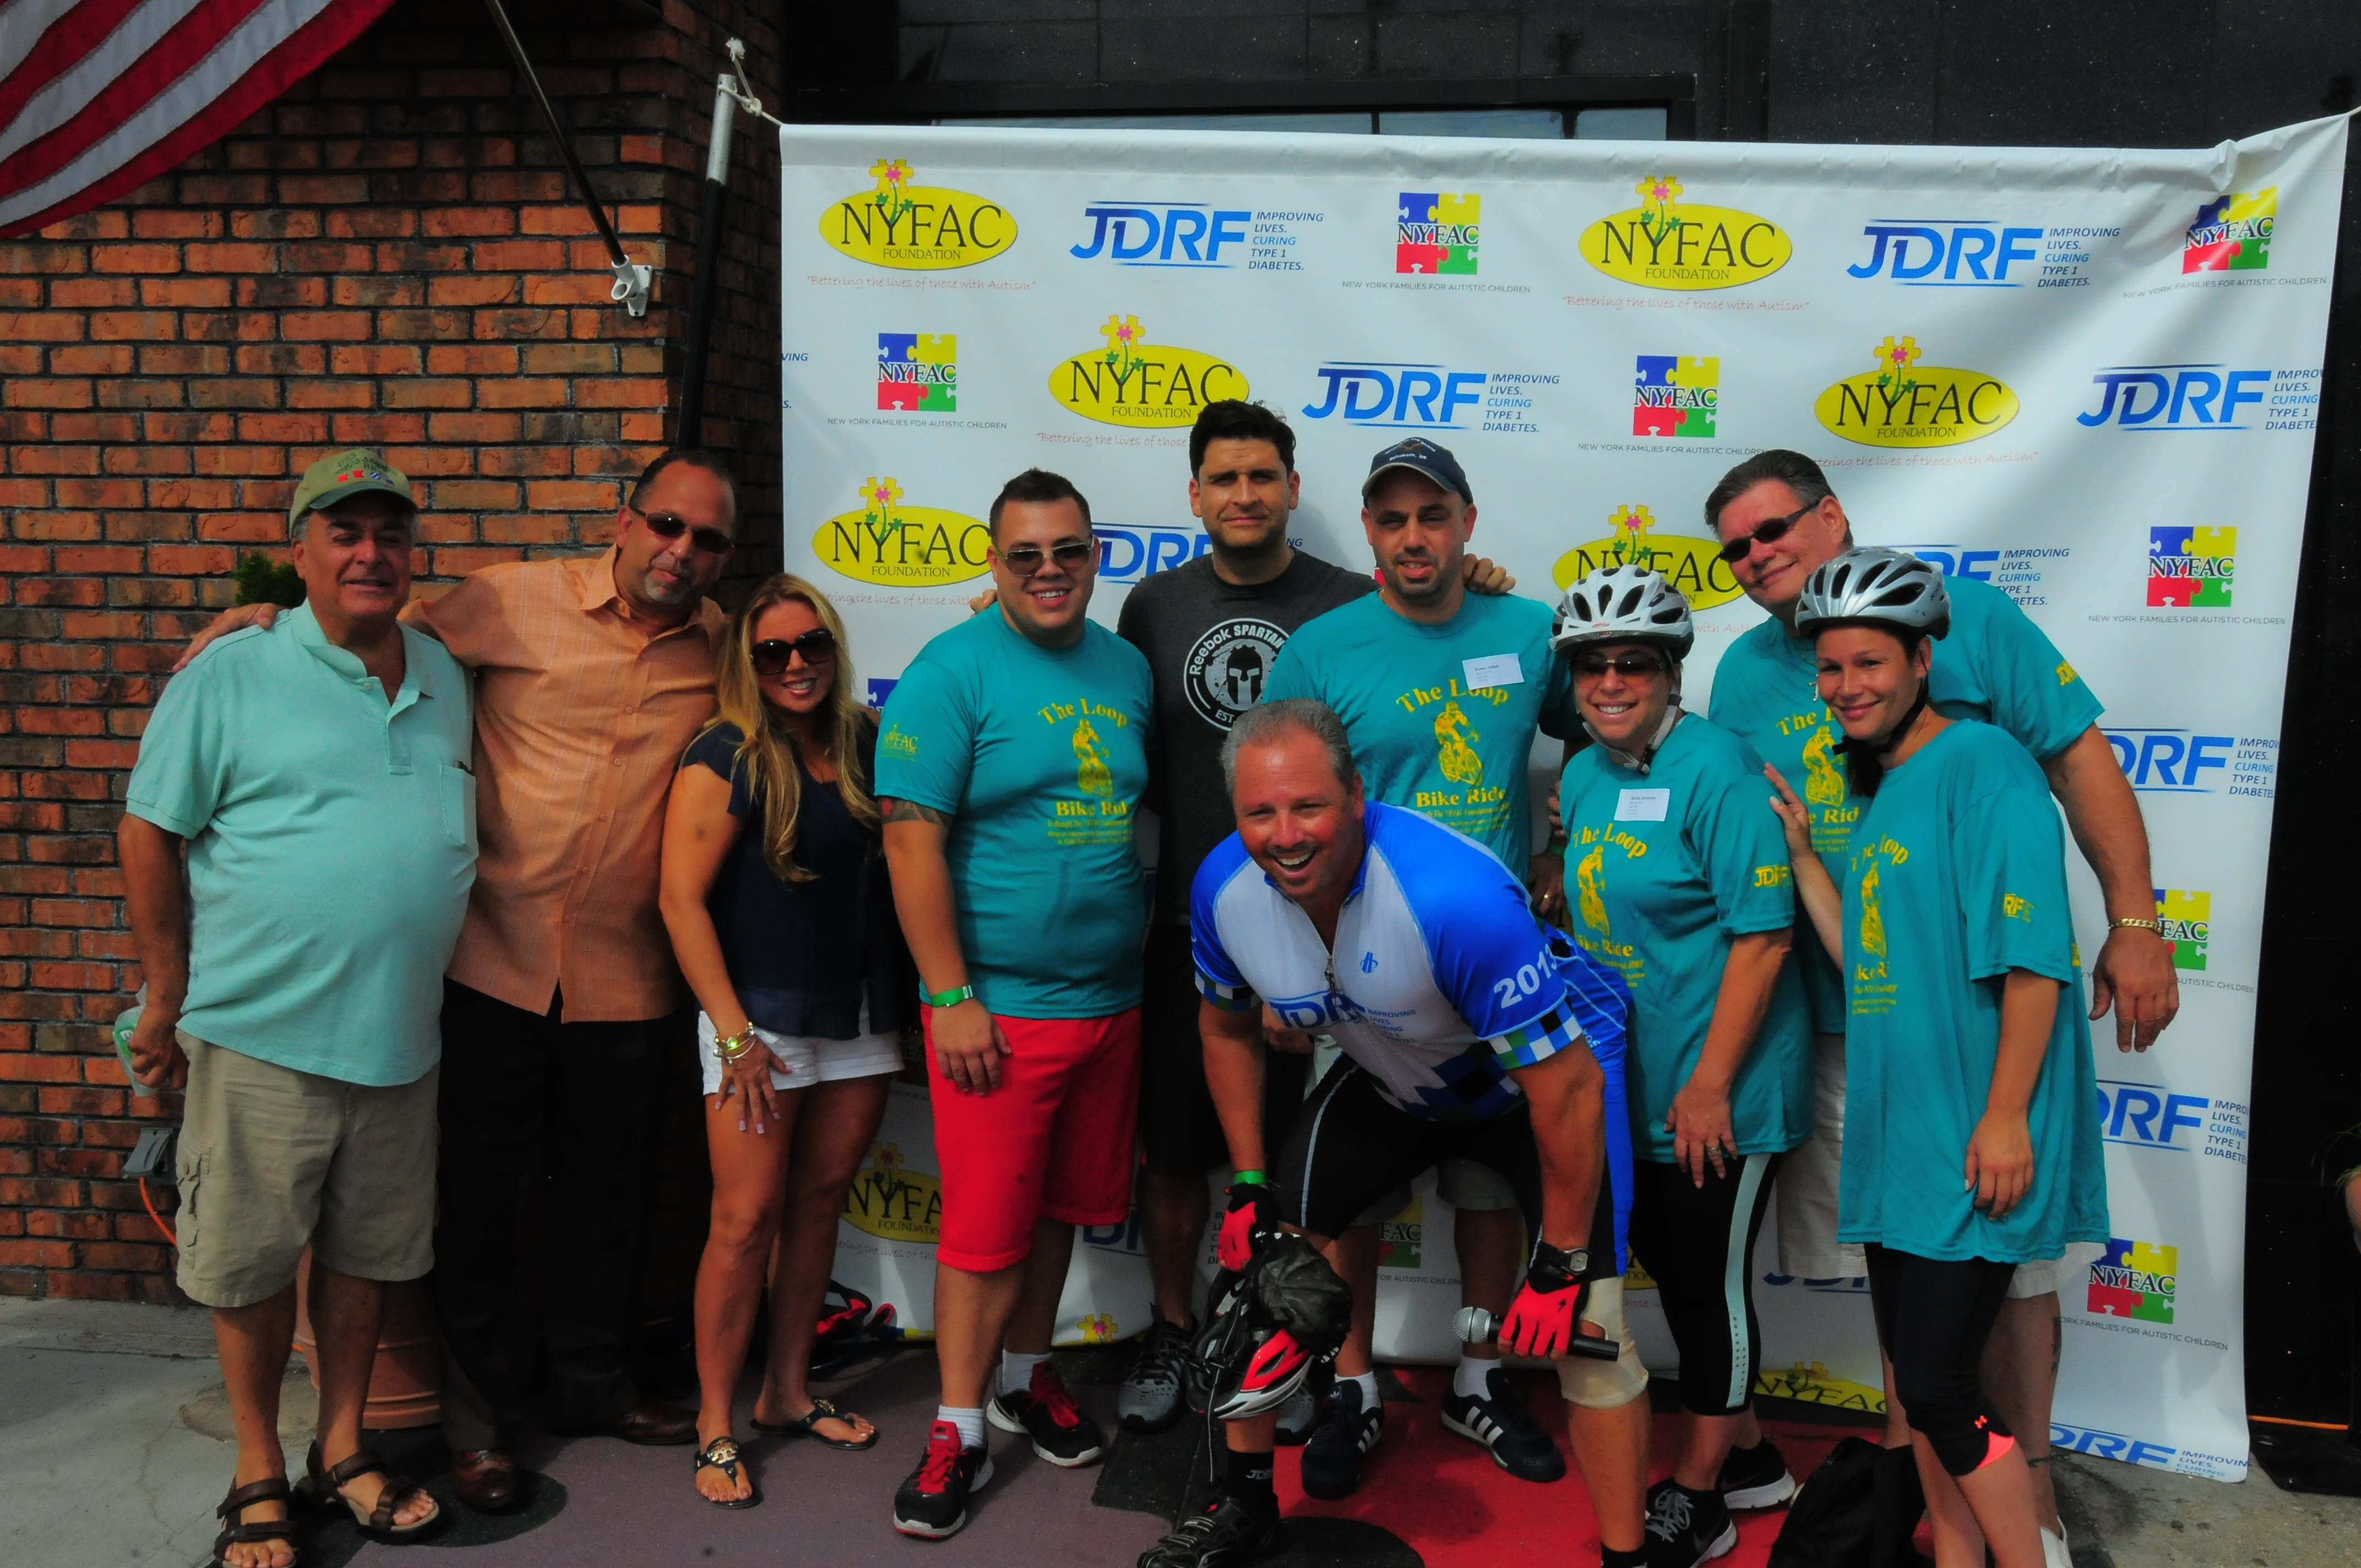 20-mile bike ride in Howard Beach to benefit two organizations